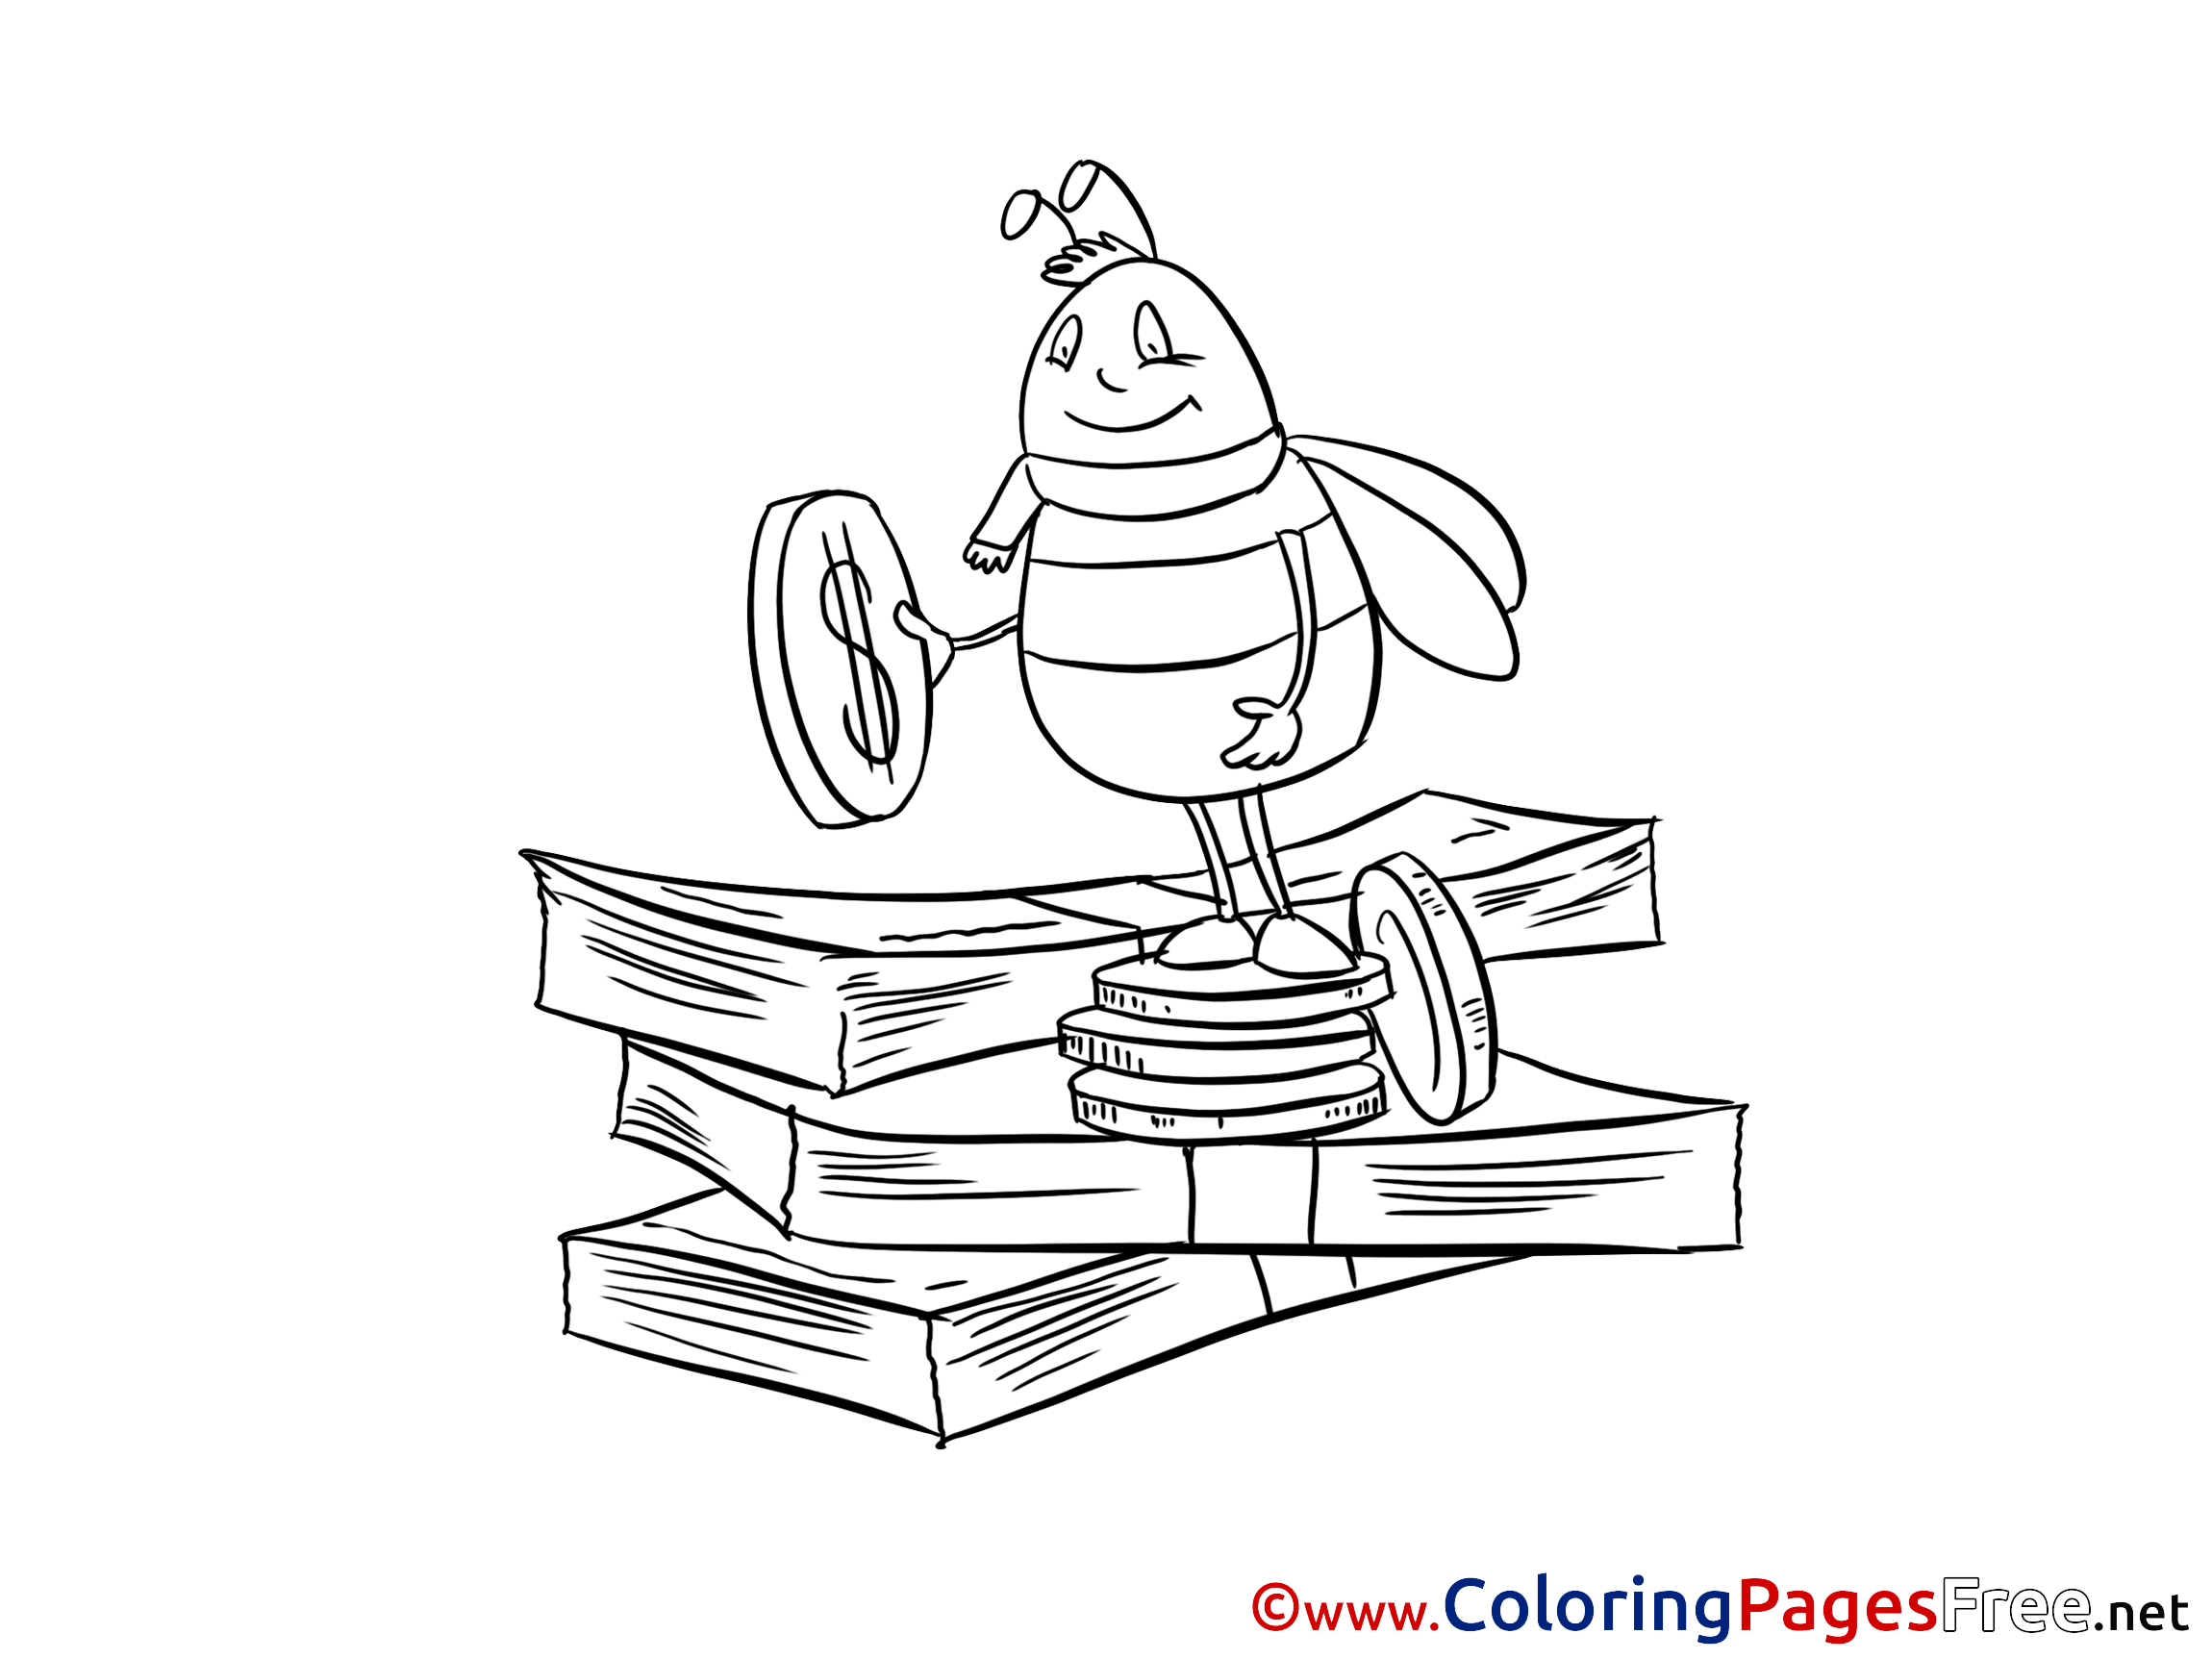 Bee Money for Children free Coloring Pages